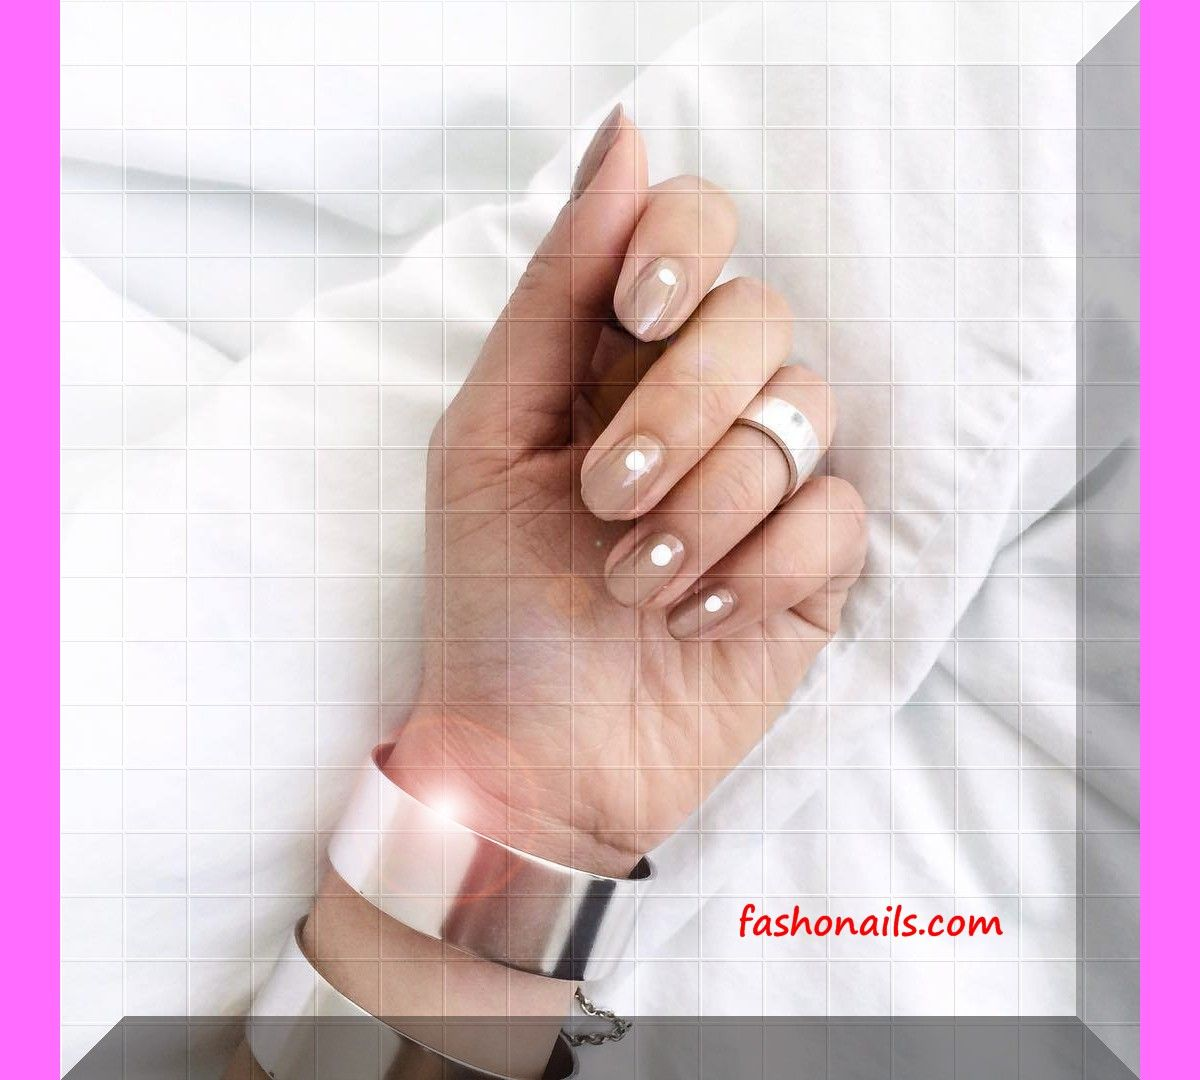 +25 wonderful nude nail art polish trendy designs ideas – Fashonails #nail_art_designs #trendy_nails #acrylic_nails #gel_manicure